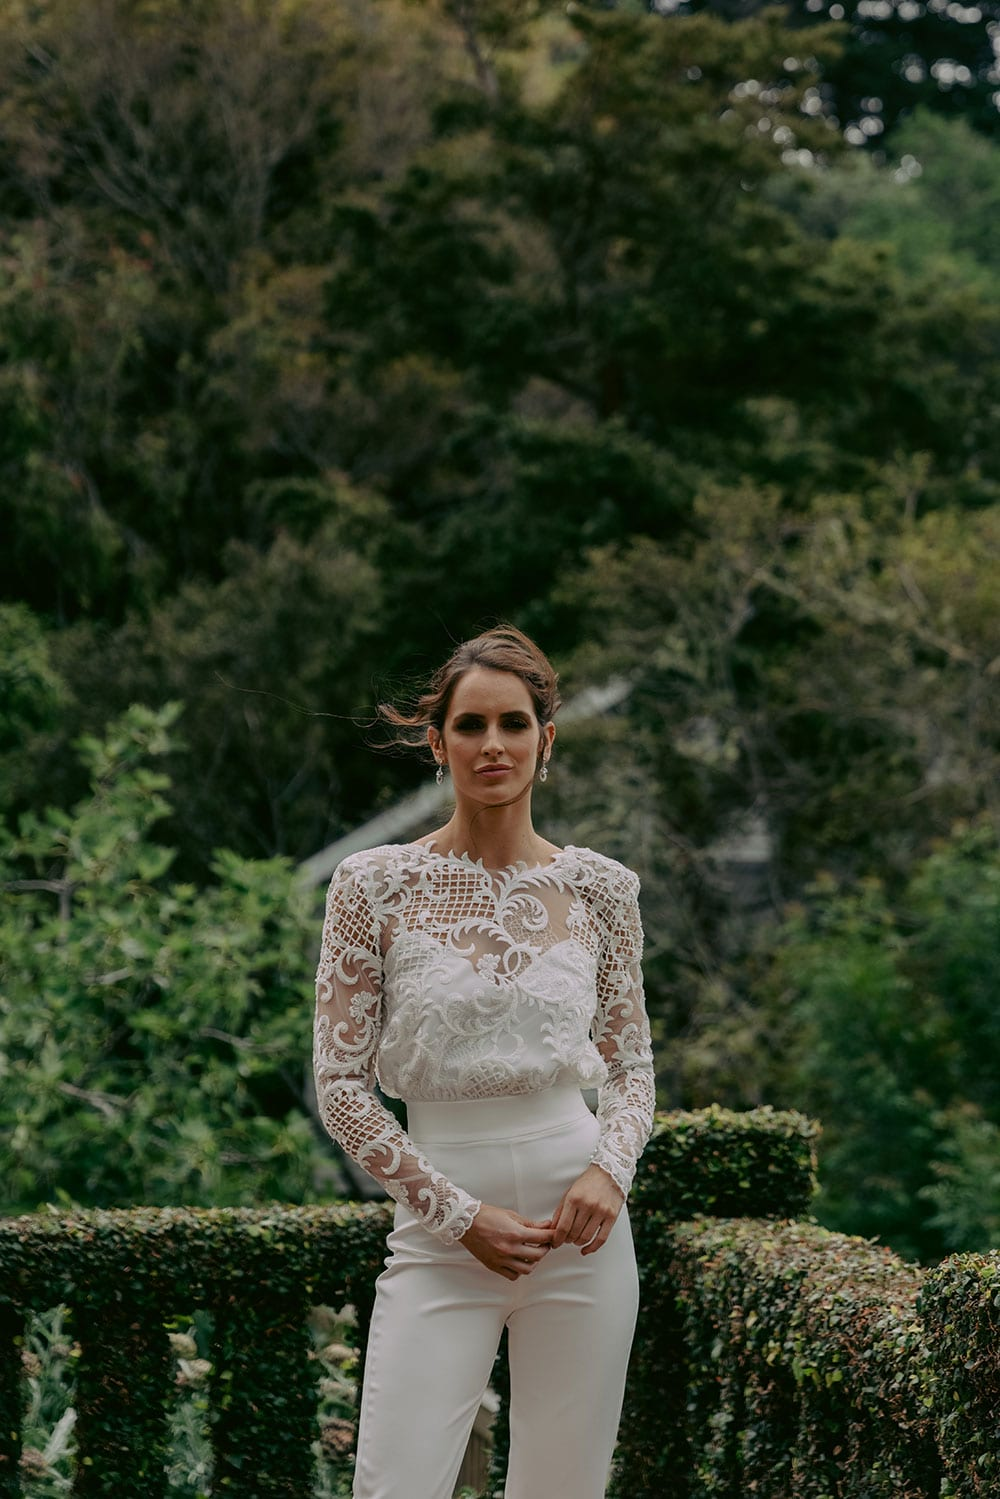 Aurora Wedding Trousers and Blouse from Vinka Design - Elegantly tailored trouser combined with a beautiful lace blouse for the Modern Bride. The blouse features a high neck and low back, with in-built camisole, fitted sleeves, & pearl buttons. Model wearing Trousers and Blouse in Clevedon Gardens near Auckland.